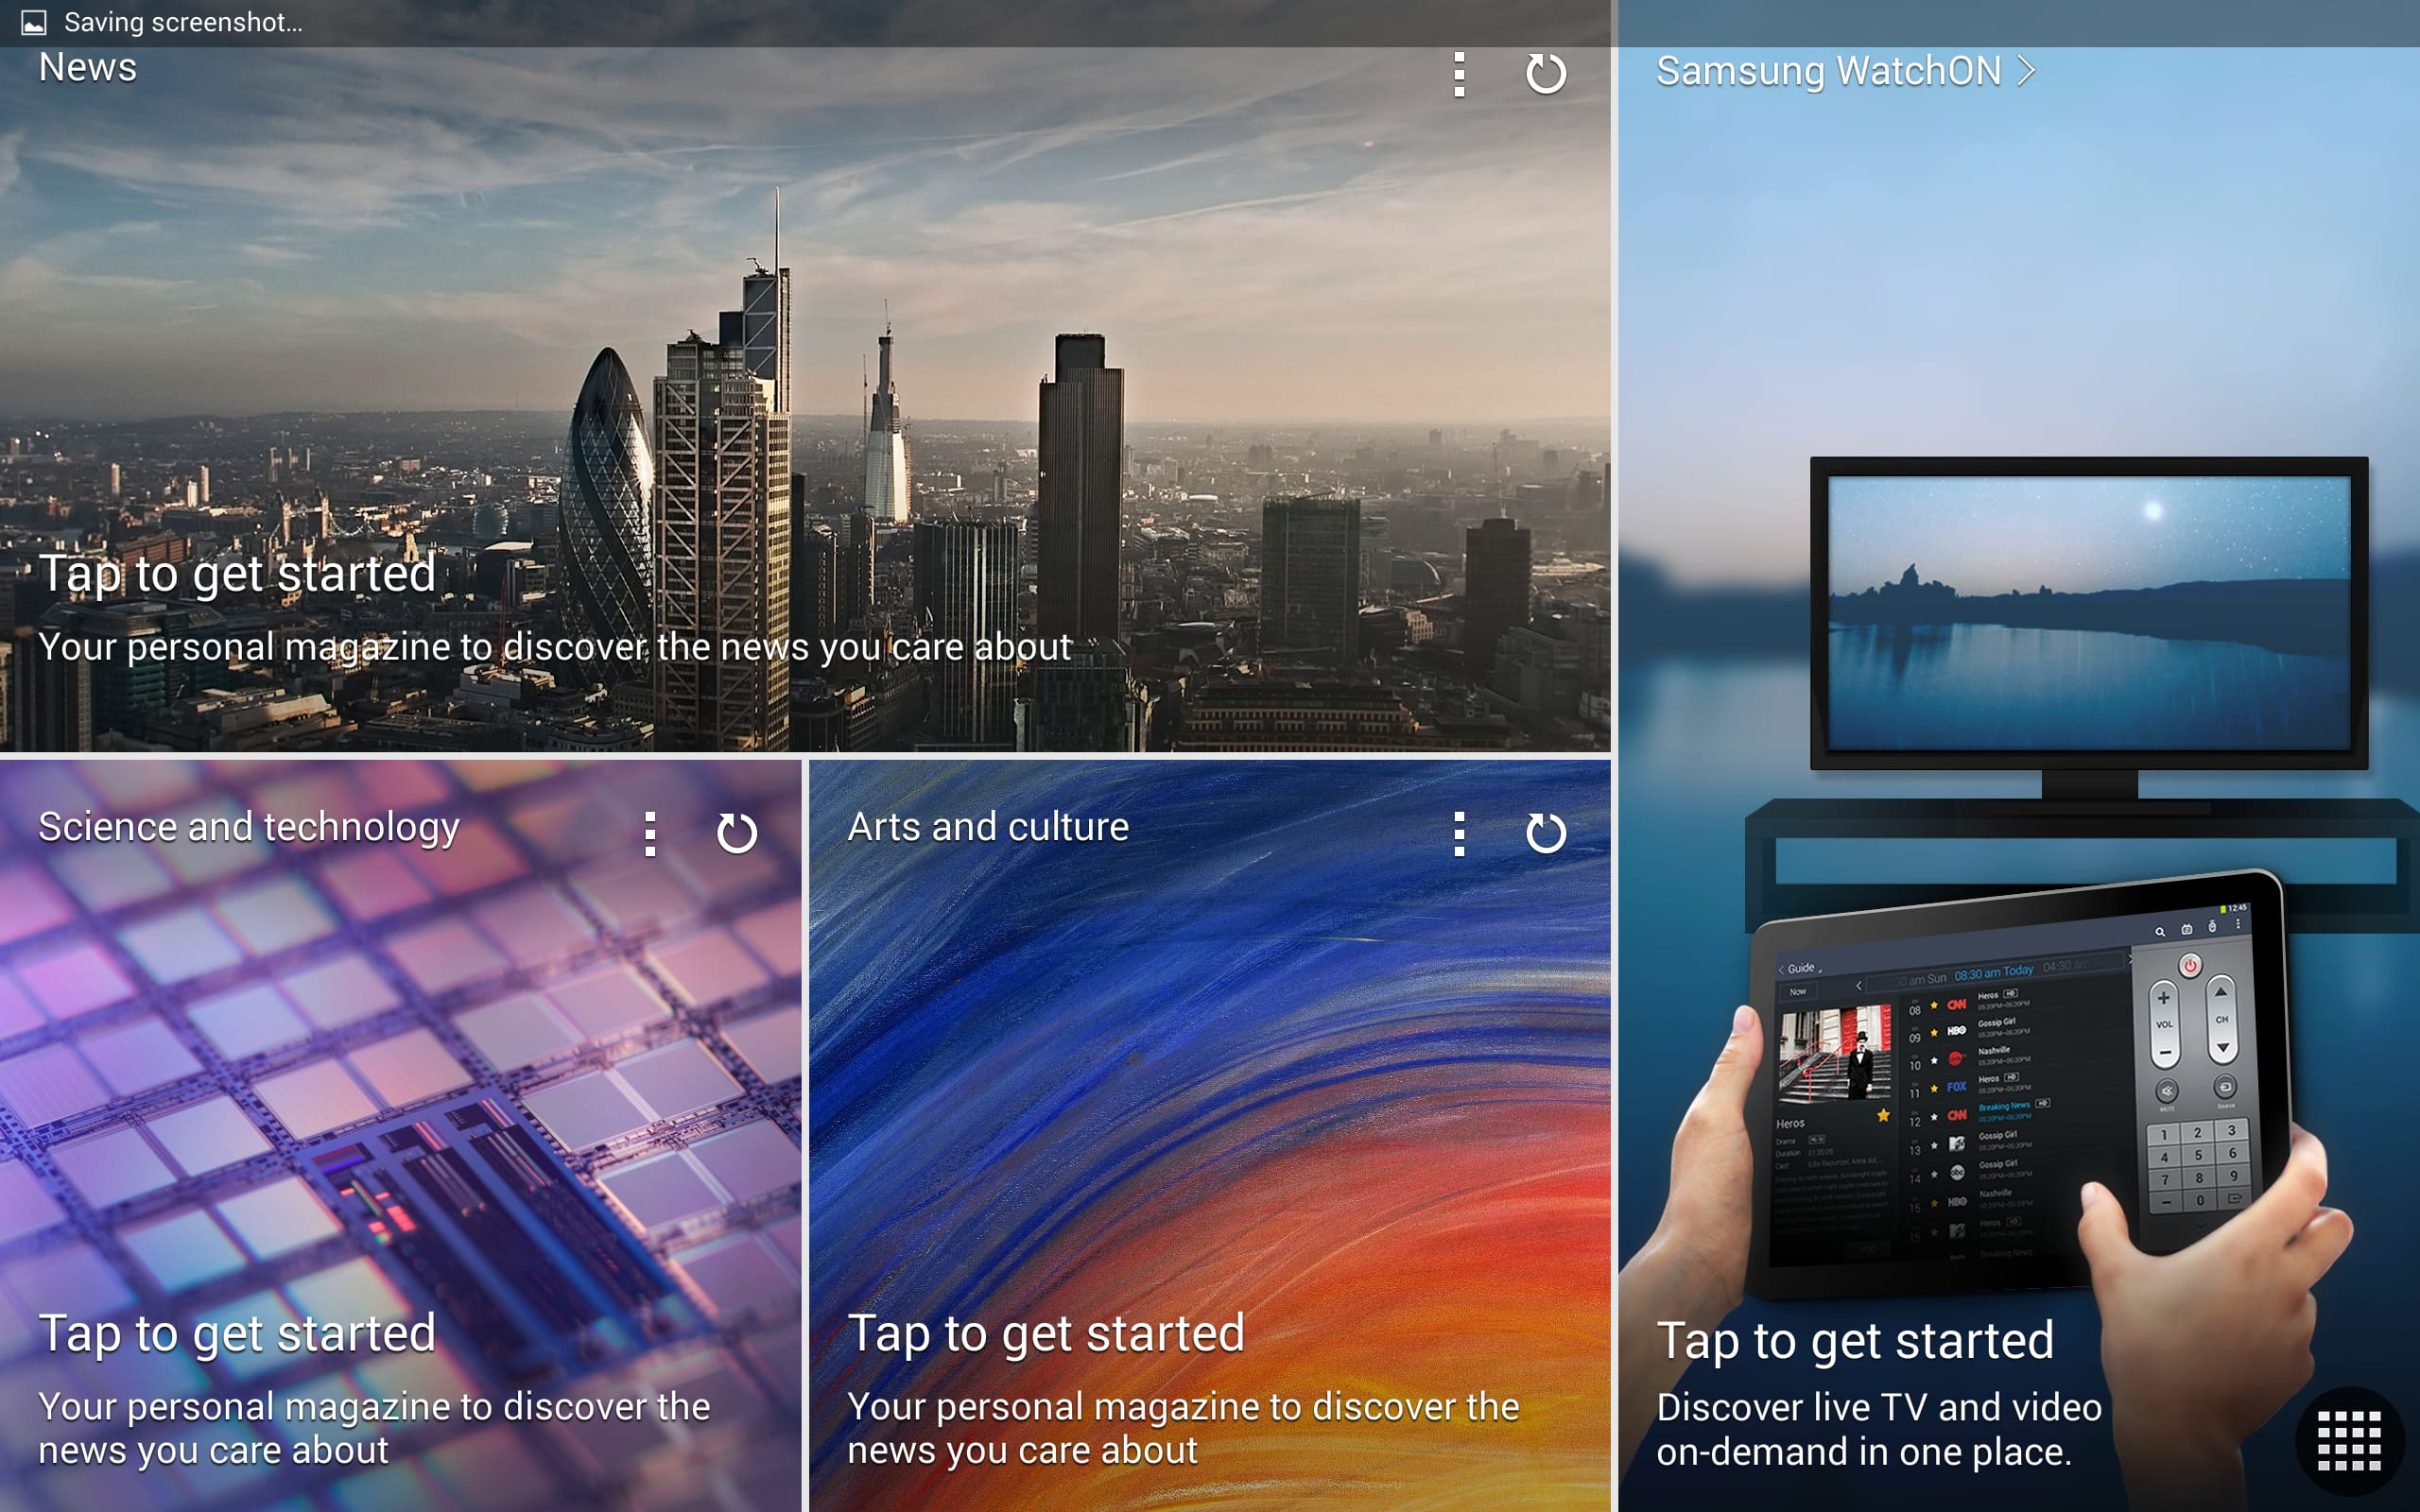 A screenshot of the Samsung Galaxy Note Pro's Flipboard screen.